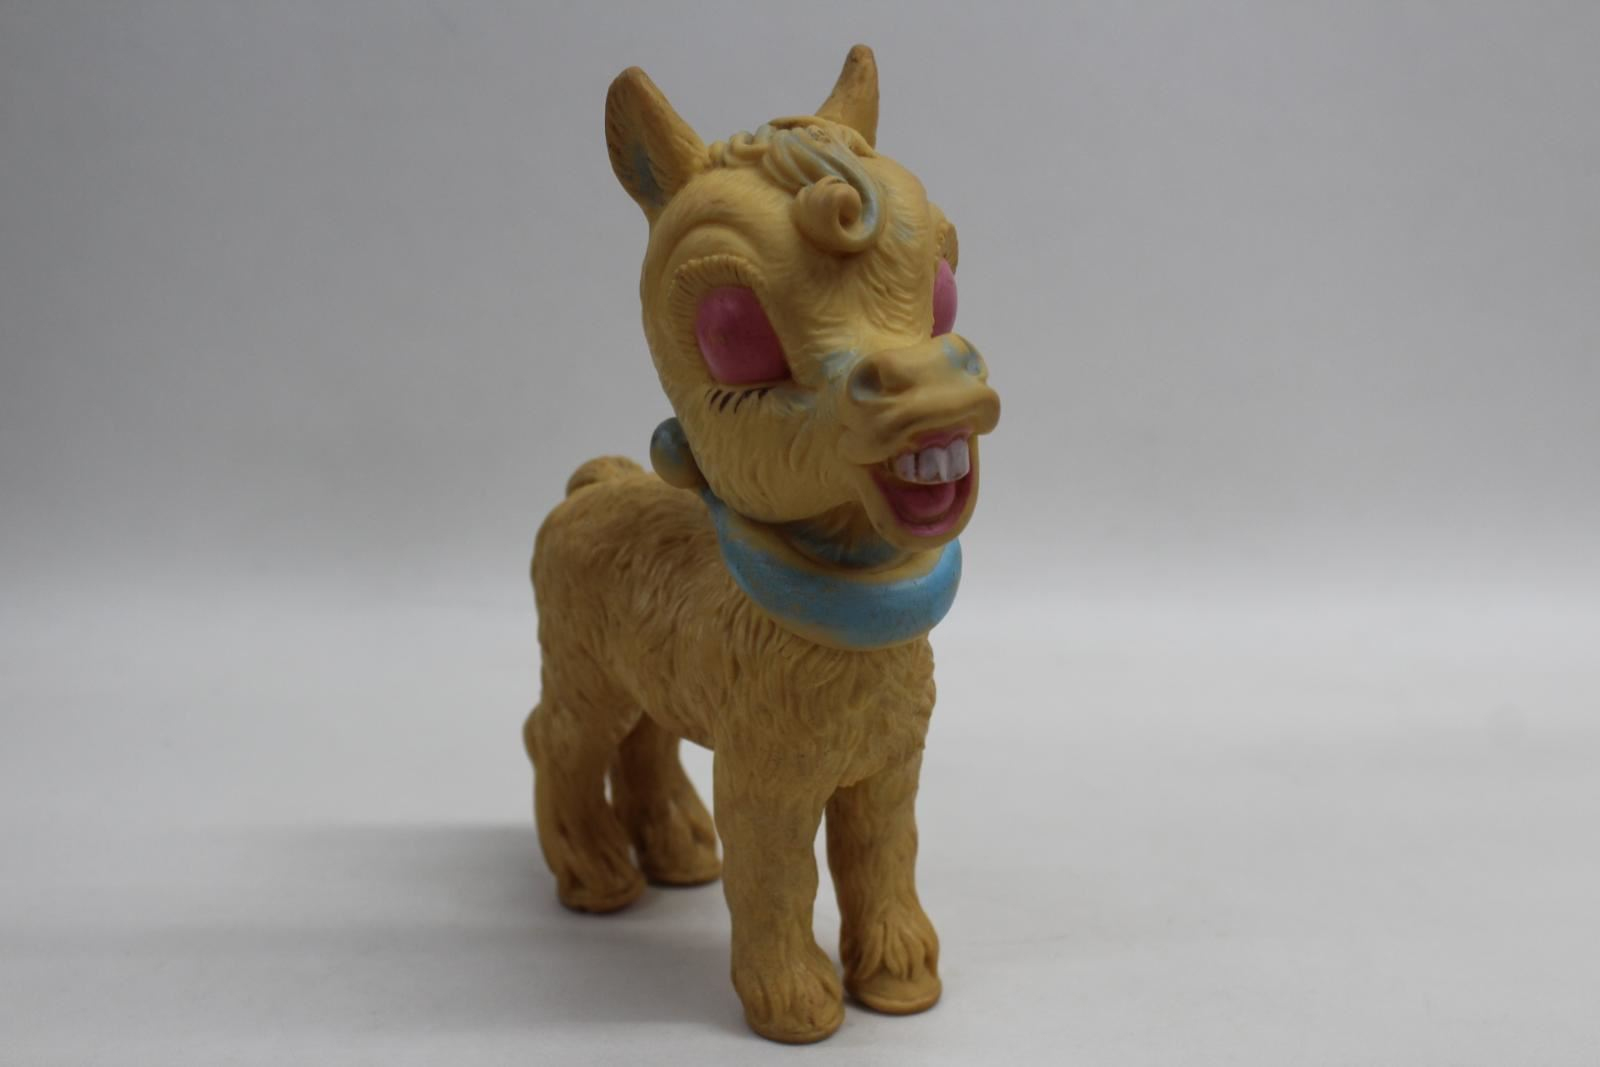 BLUE-RIBBON-1958-Vintage-Rubber-Horse-Squeak-Toy-Yellow-8-Inch-20cm-Tall